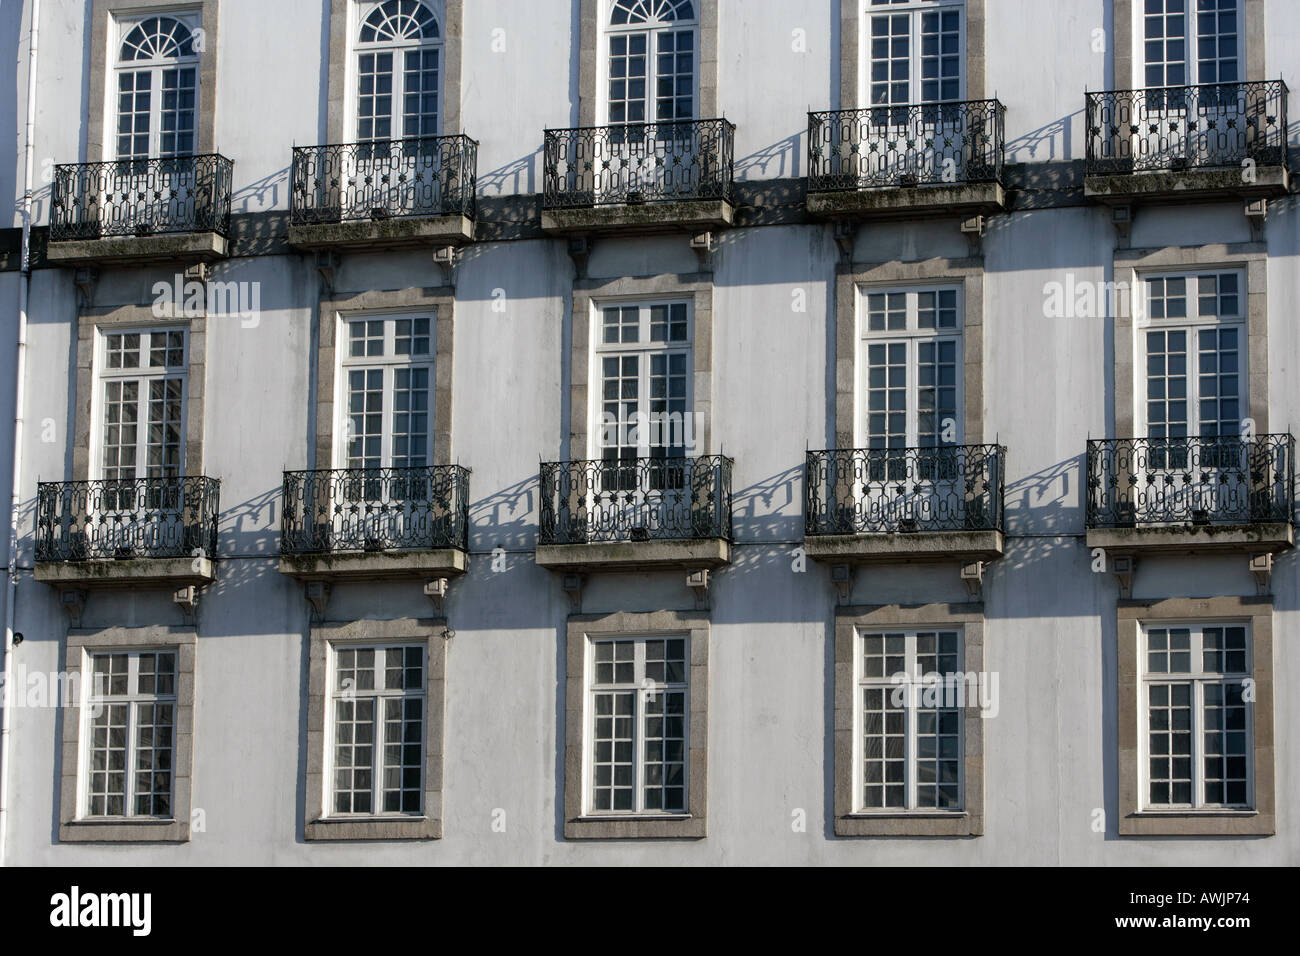 A Detail Shot Of A Classical Building With Multiple Windows French